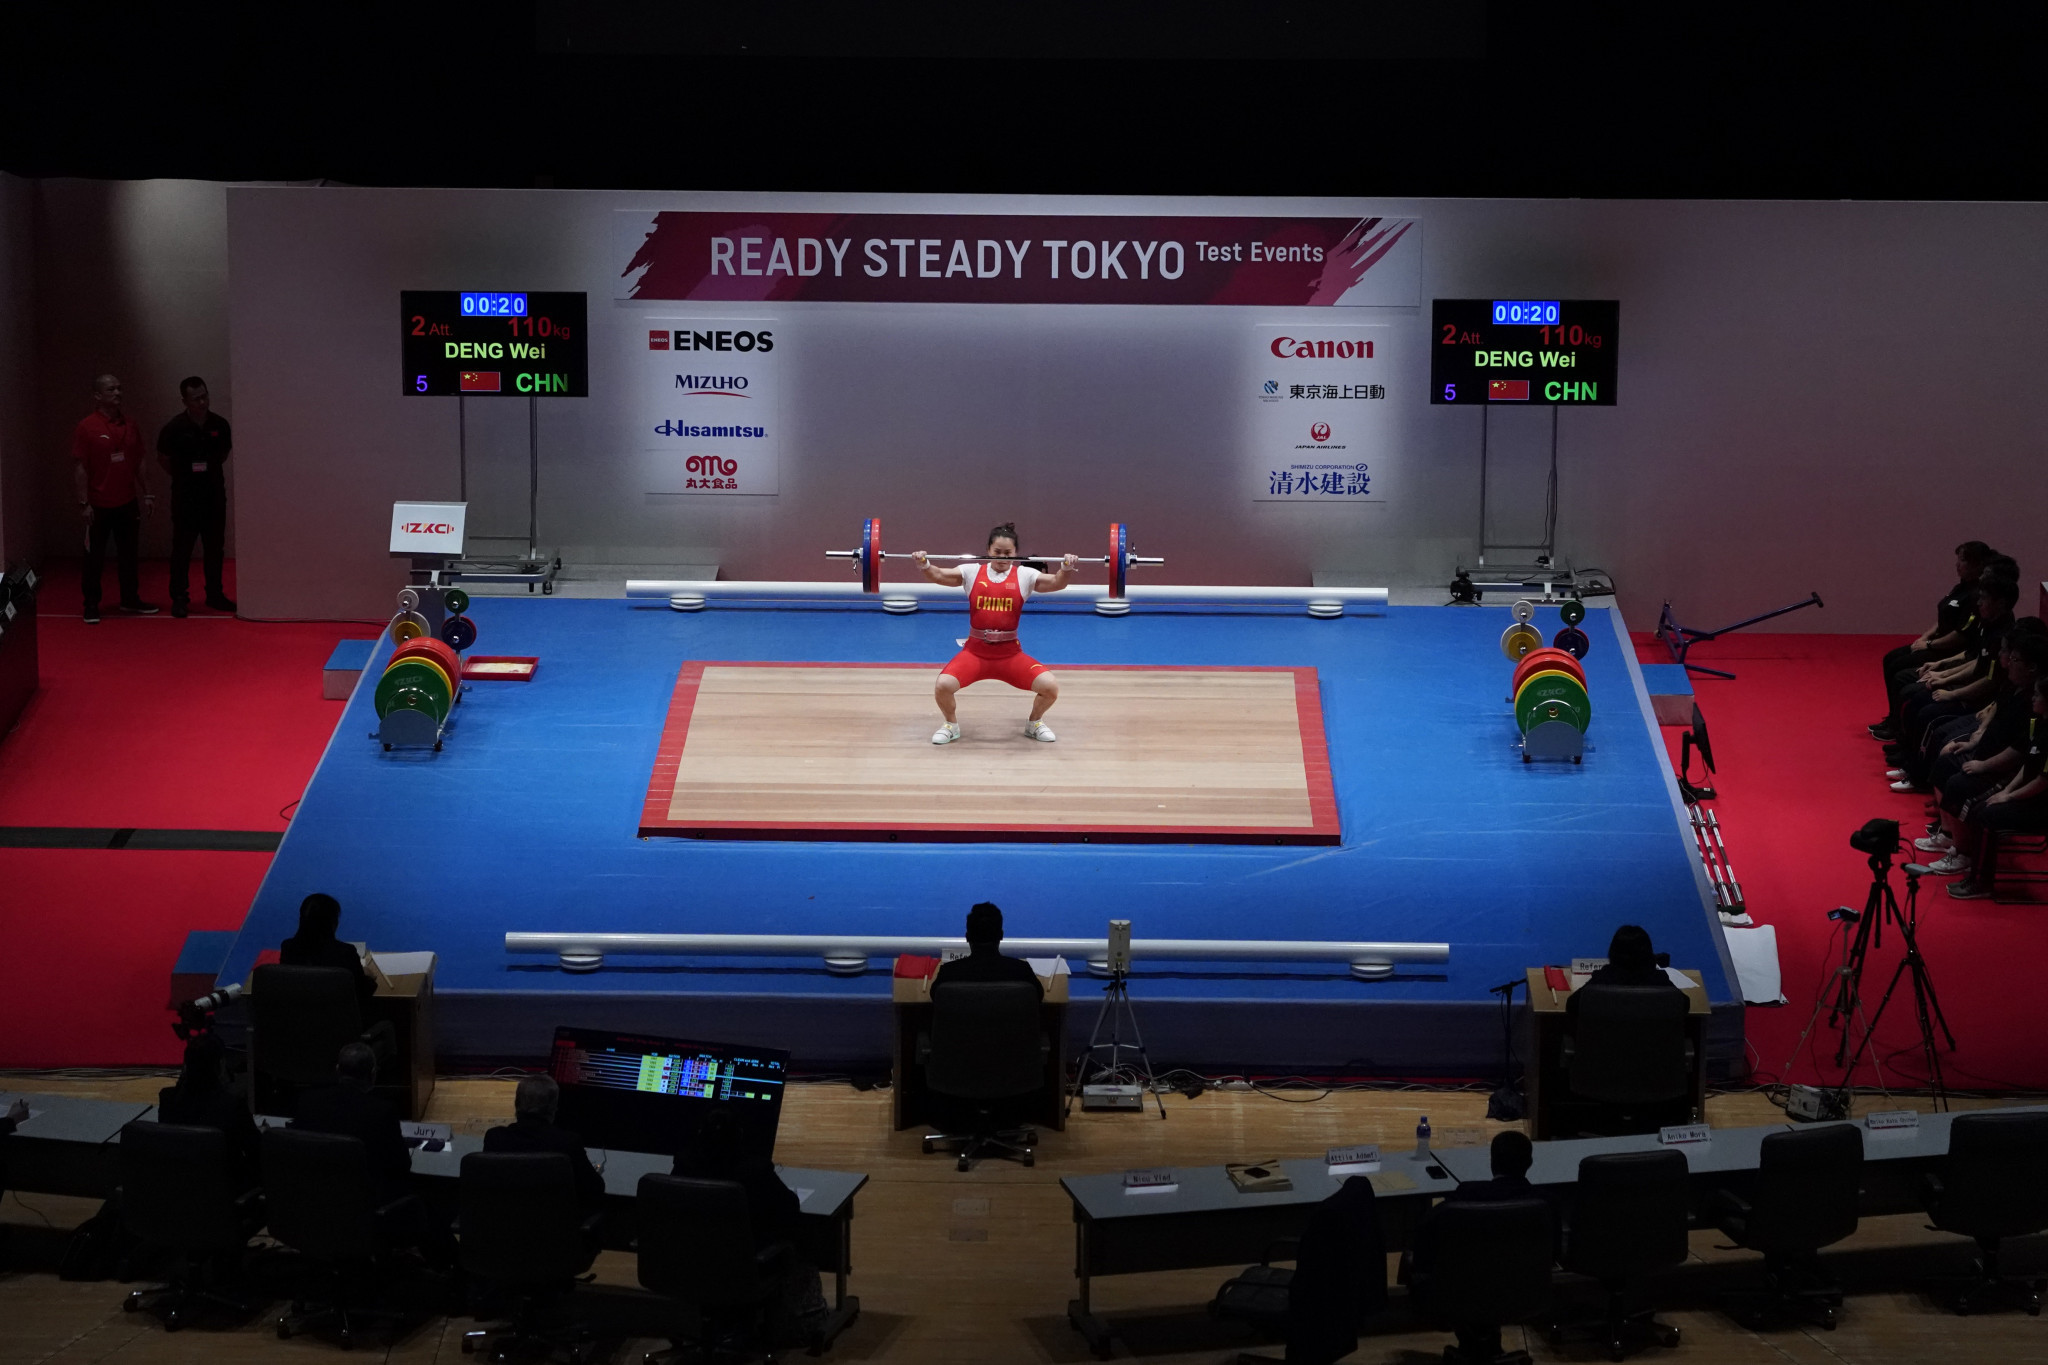 Russia can send only one female weightlifting and one male weightlifting to the Tokyo 2020 Olympics - where they will have to compete under an